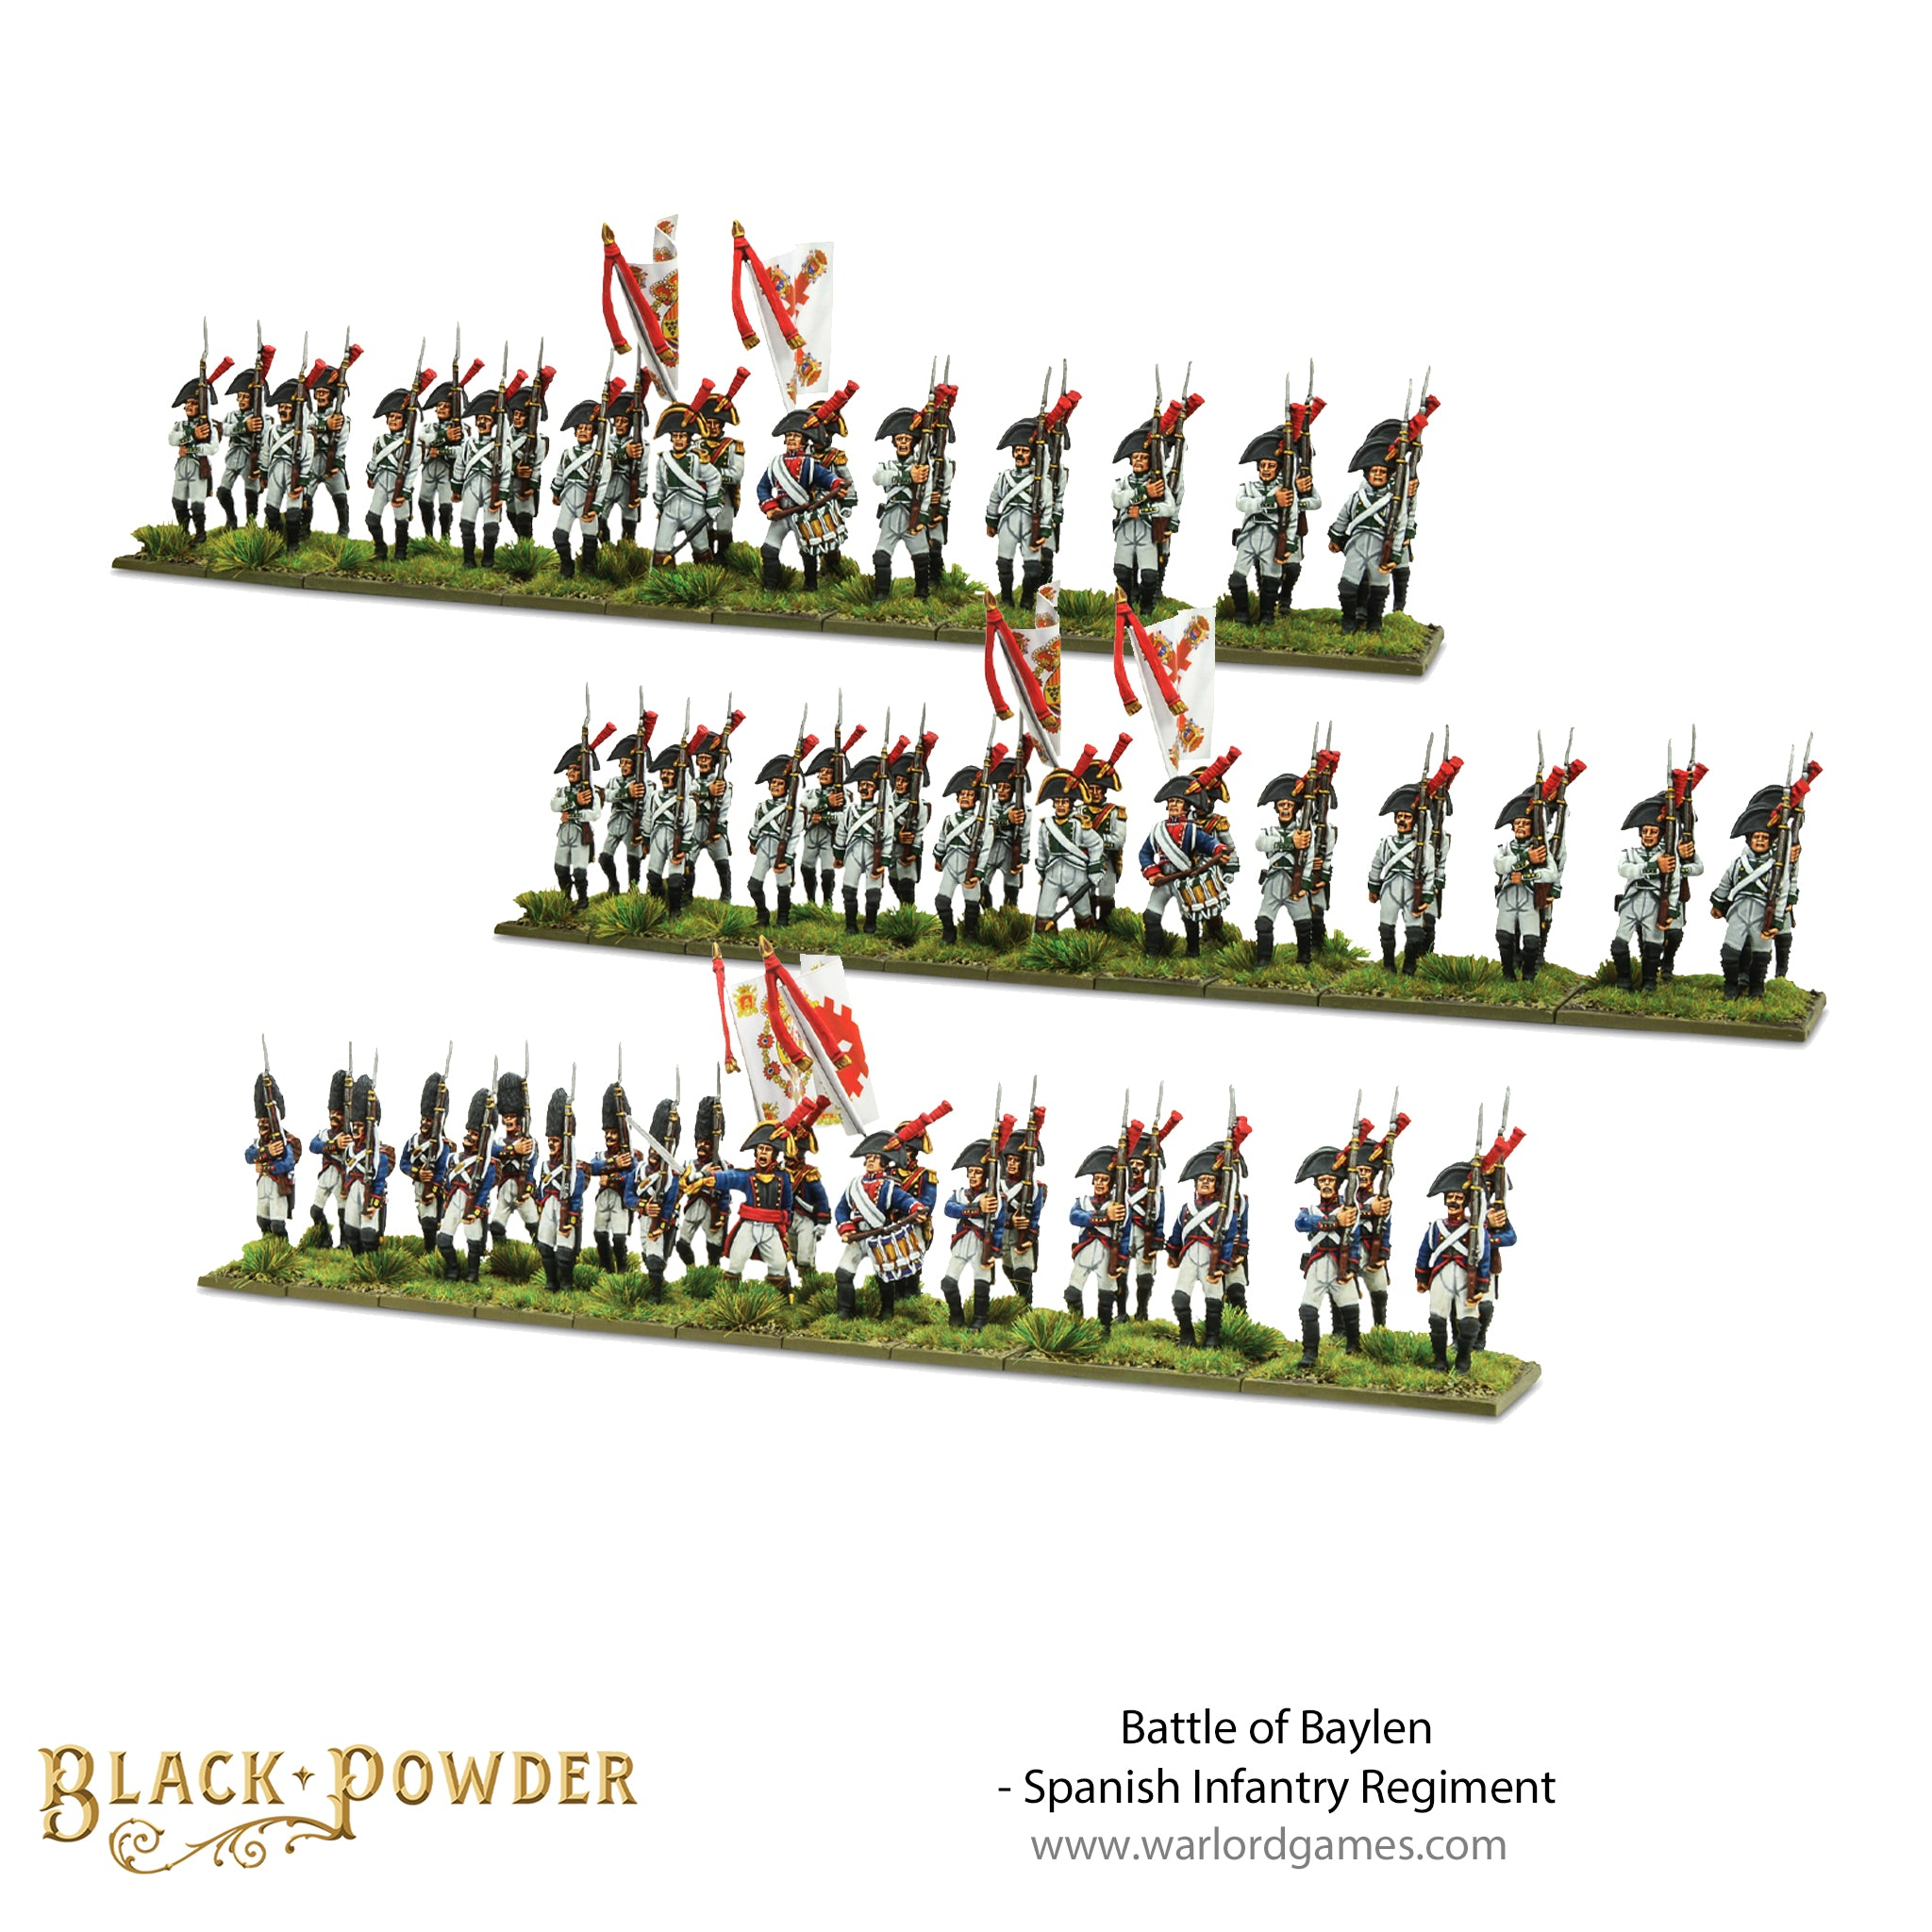 Battle of Baylen - Napoleonic Spanish Infantry Regiment